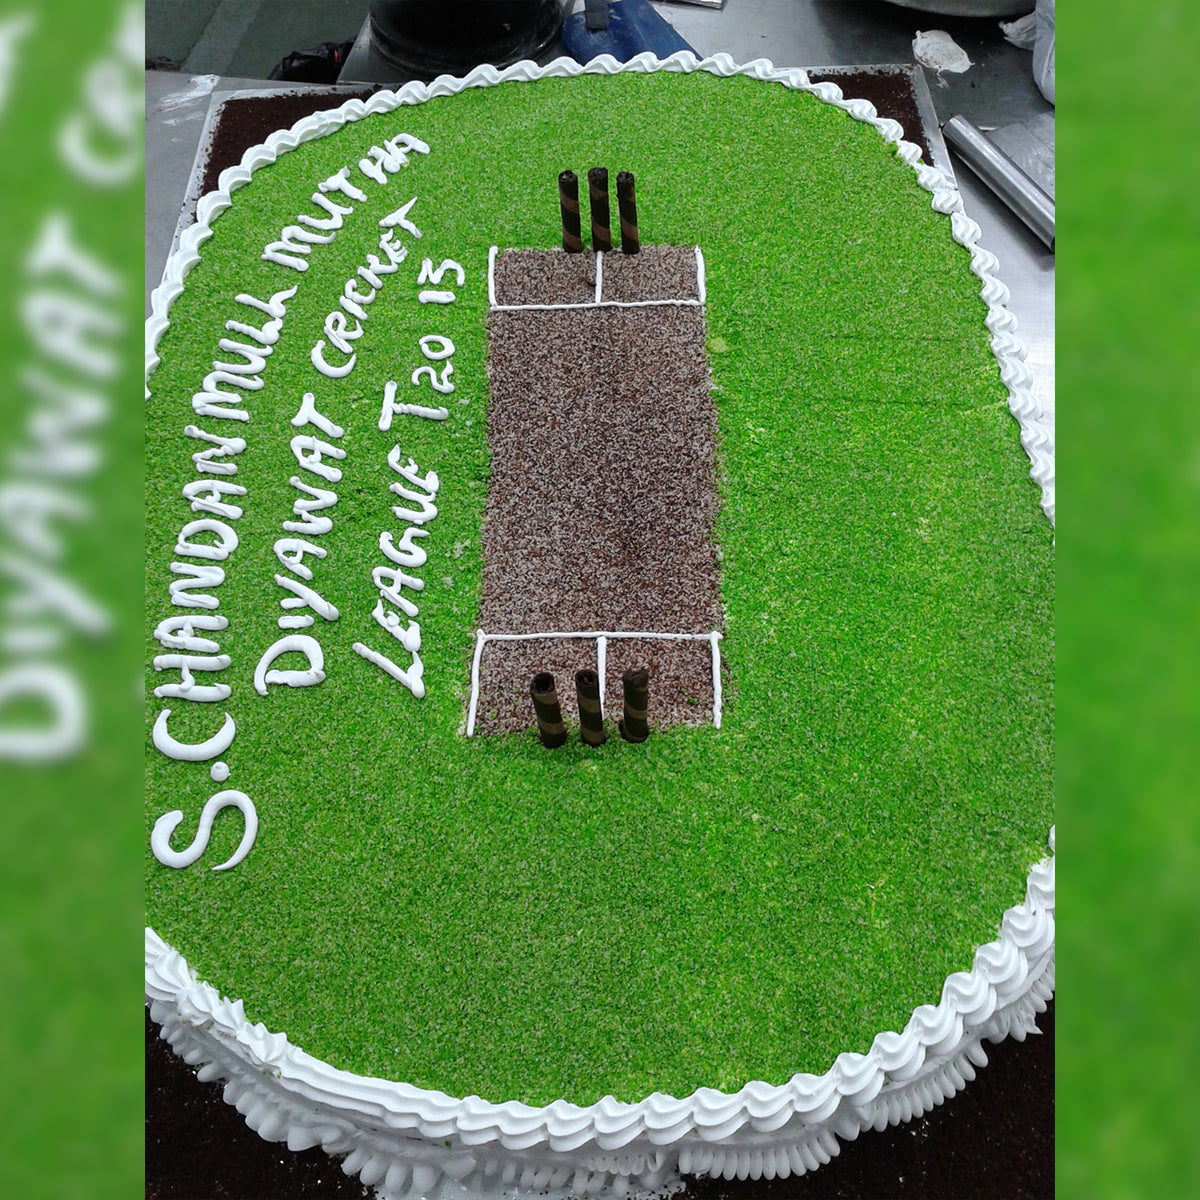 Cricket Ground Cake - CWD - Arabian Petals